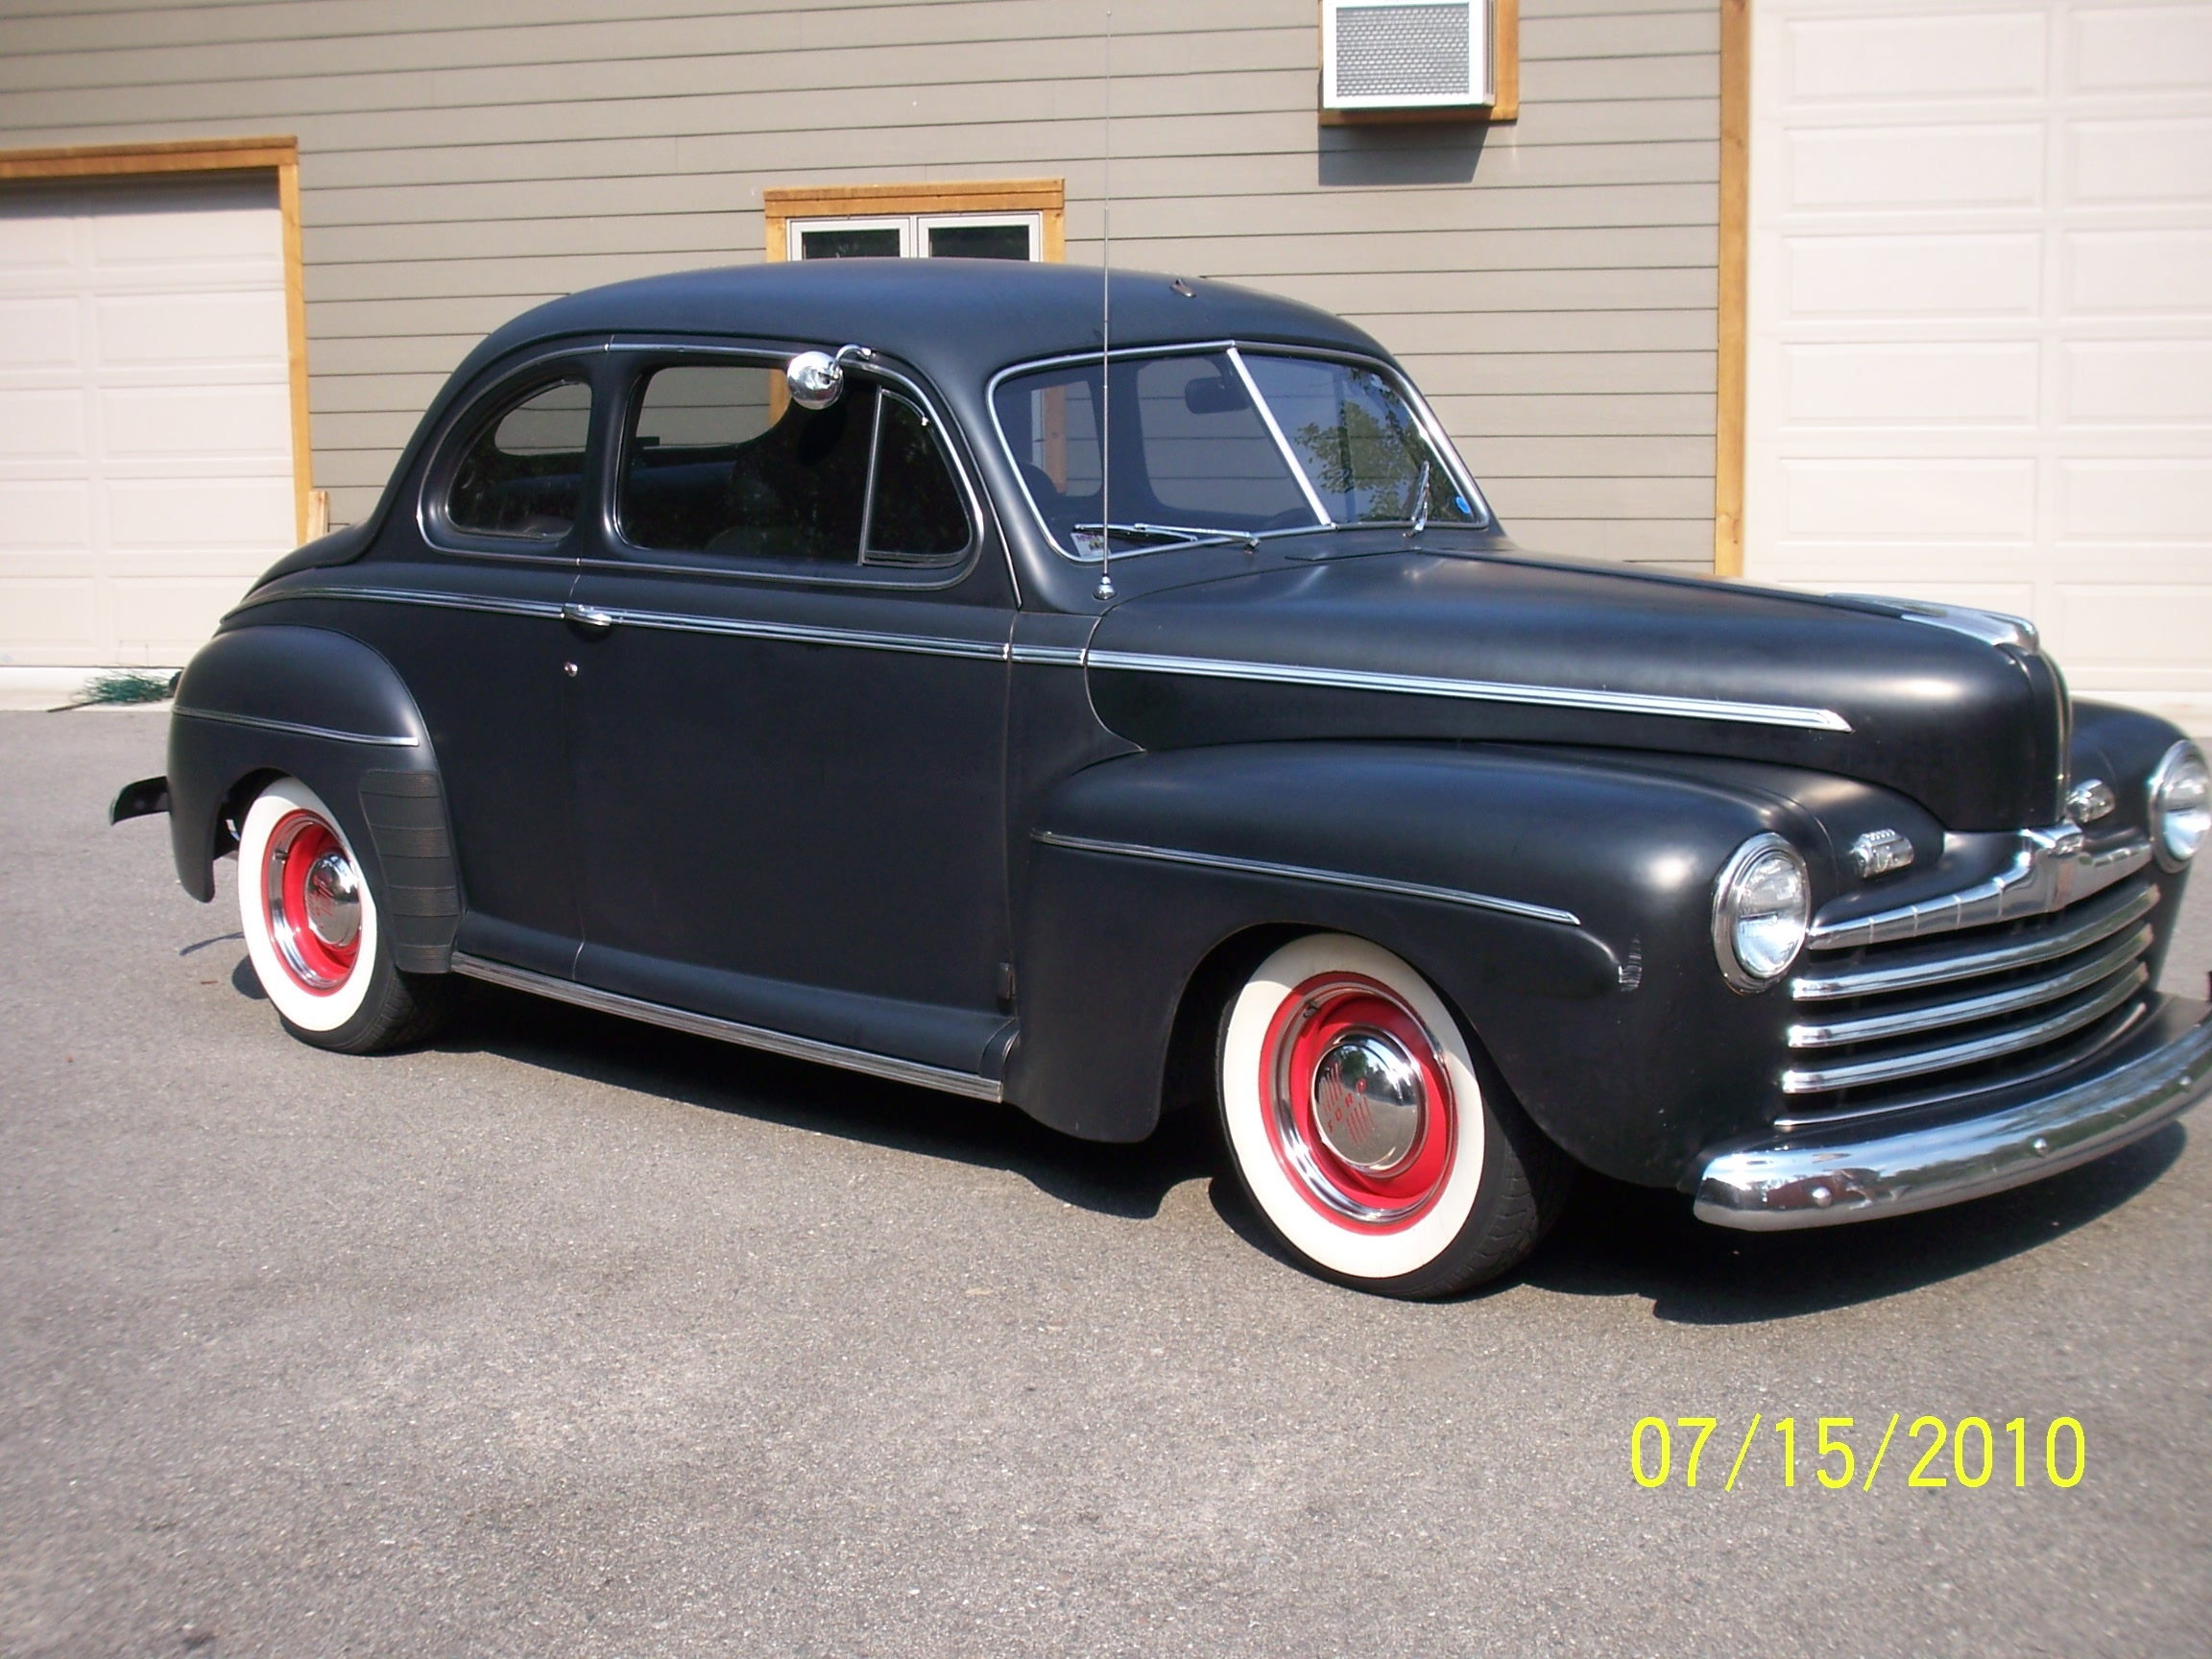 Click image for larger version  Name:46Ford.JPG Views:651 Size:1.77 MB ID:57760